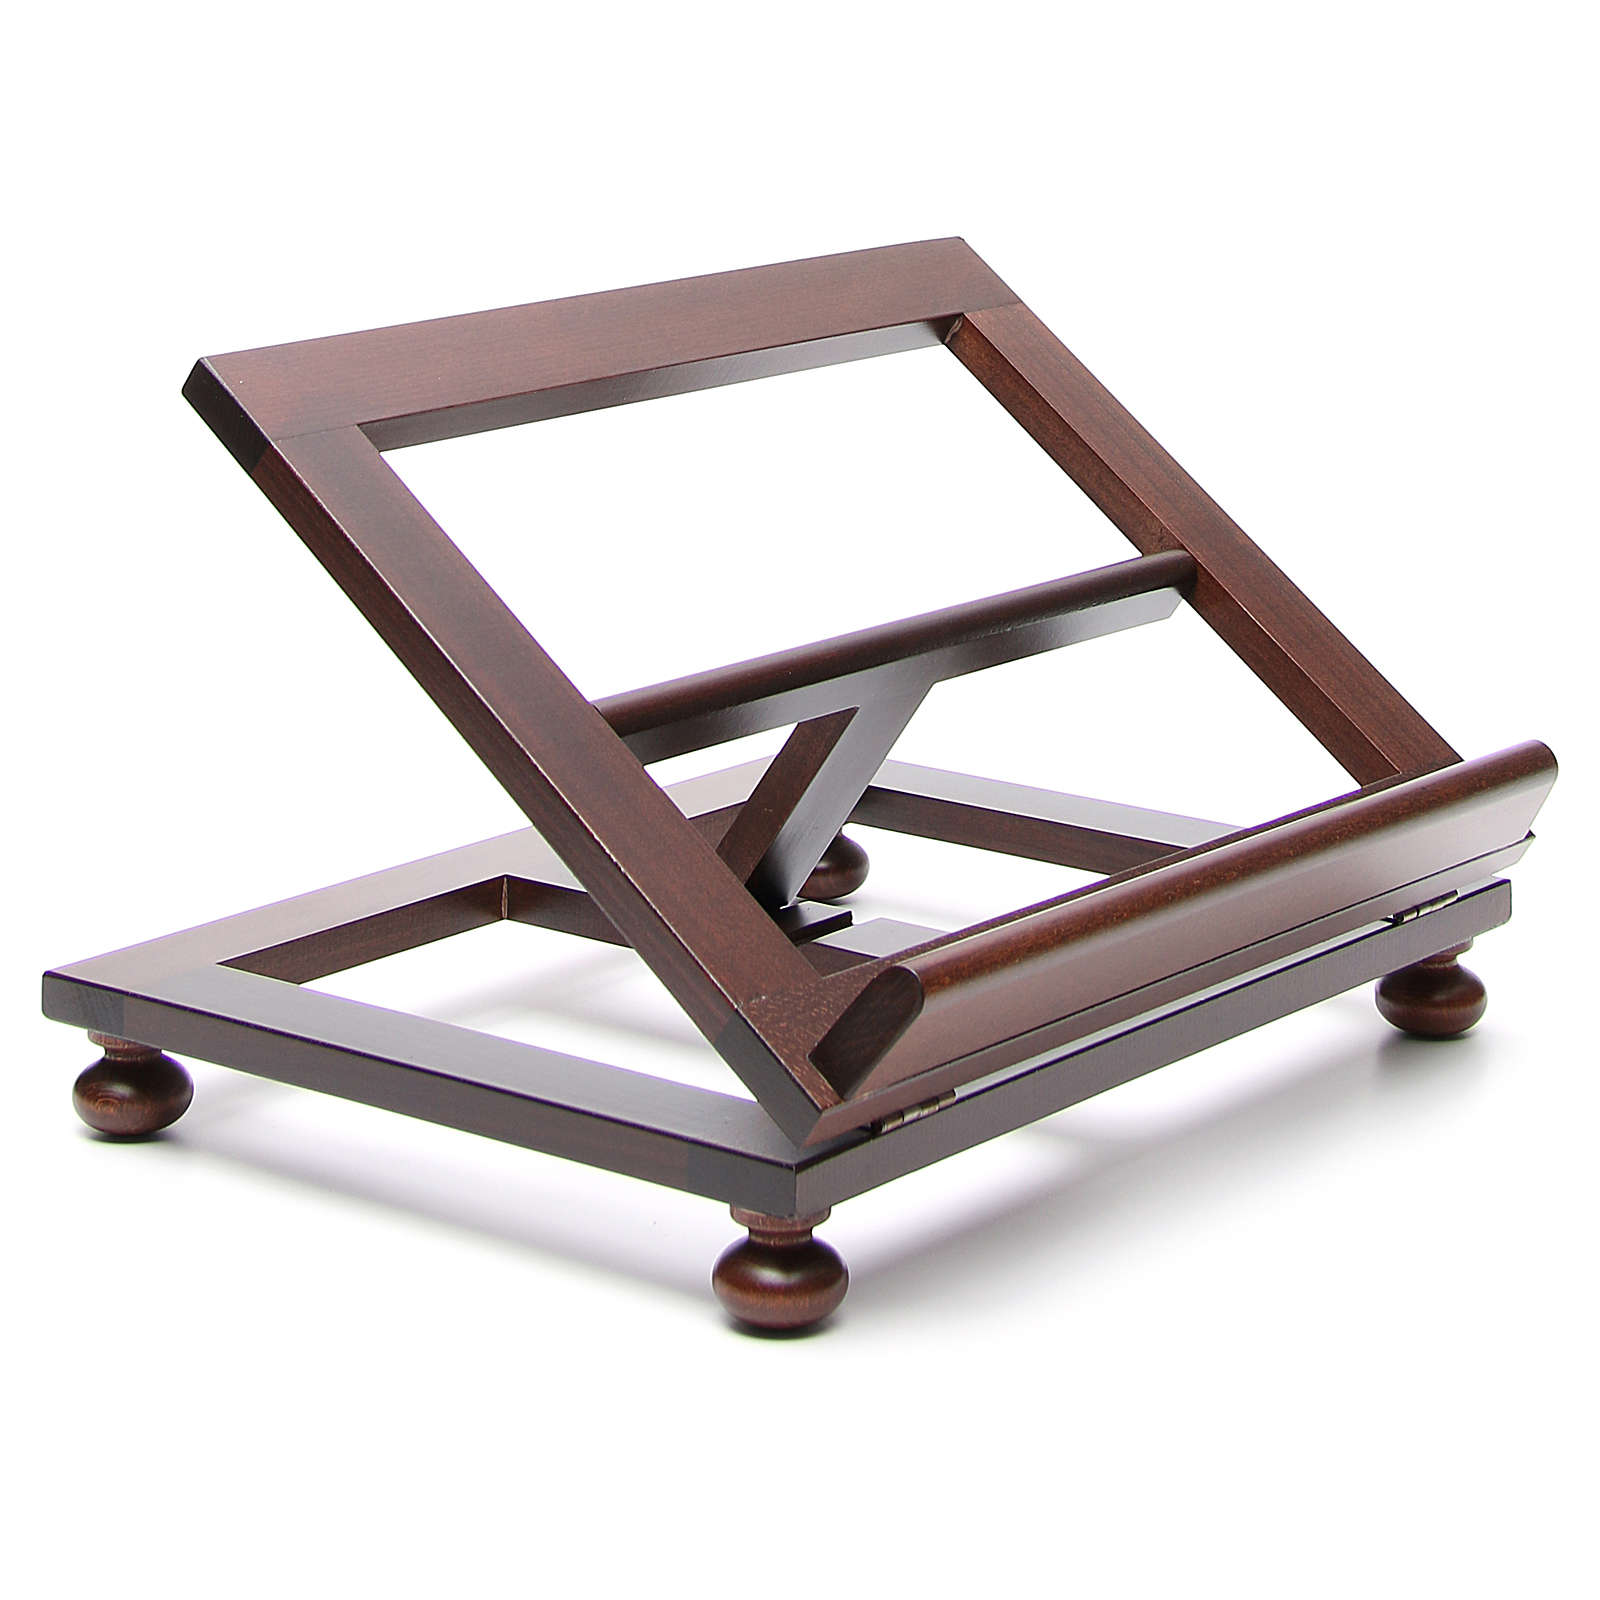 Top classic book-stand 4